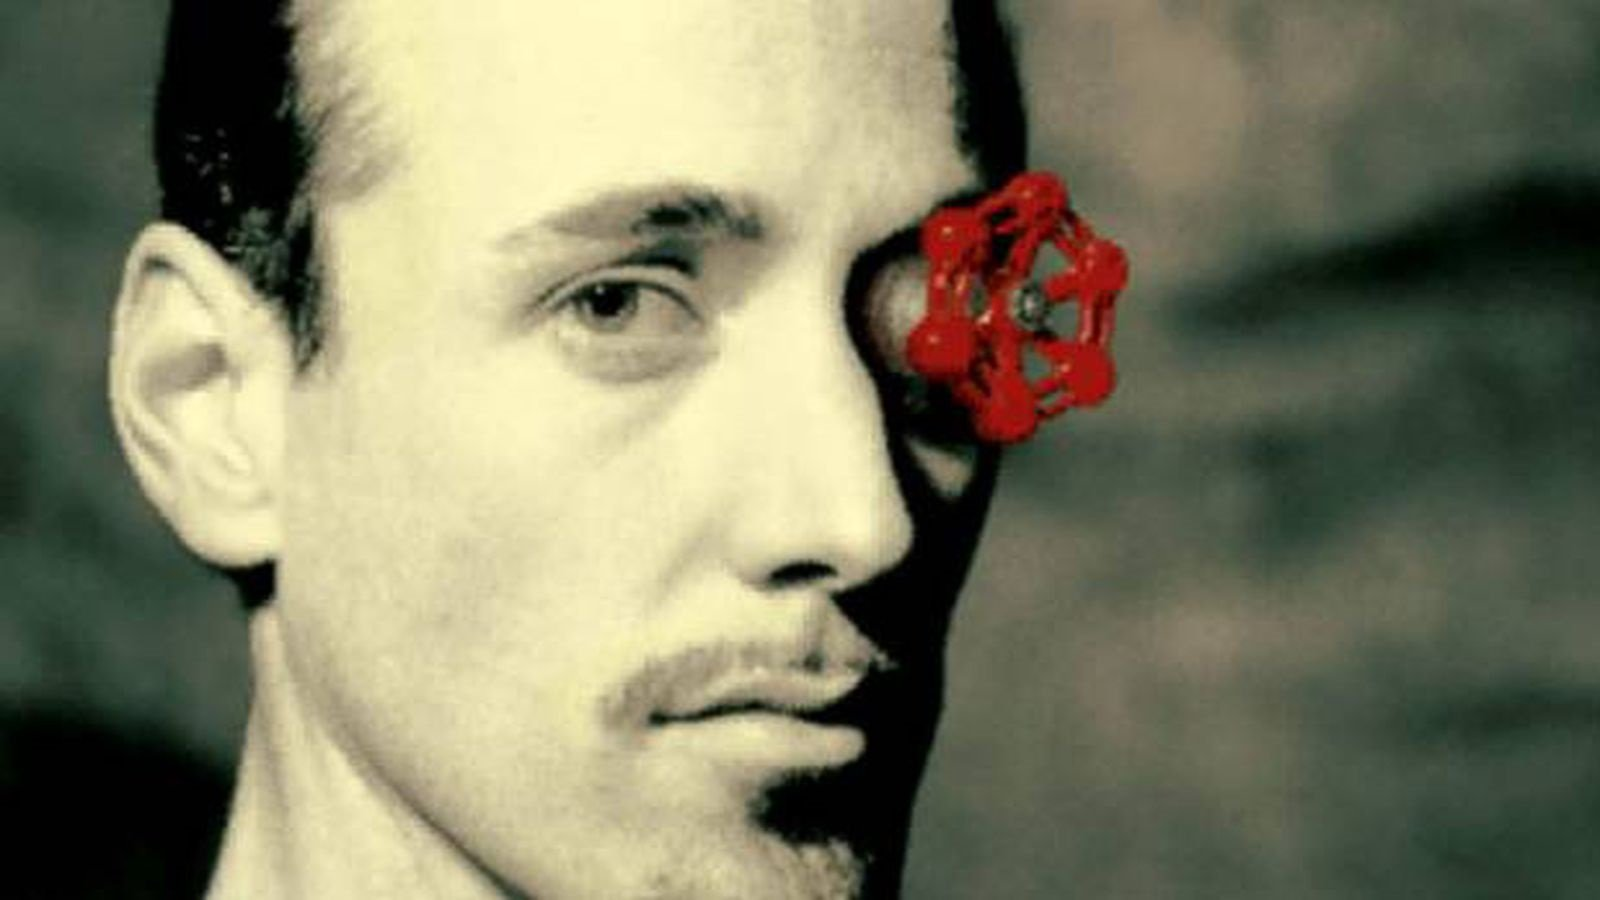 Sign me the heck up for Geoff Keighley's documentary on the past 10 years of Valve screenshot